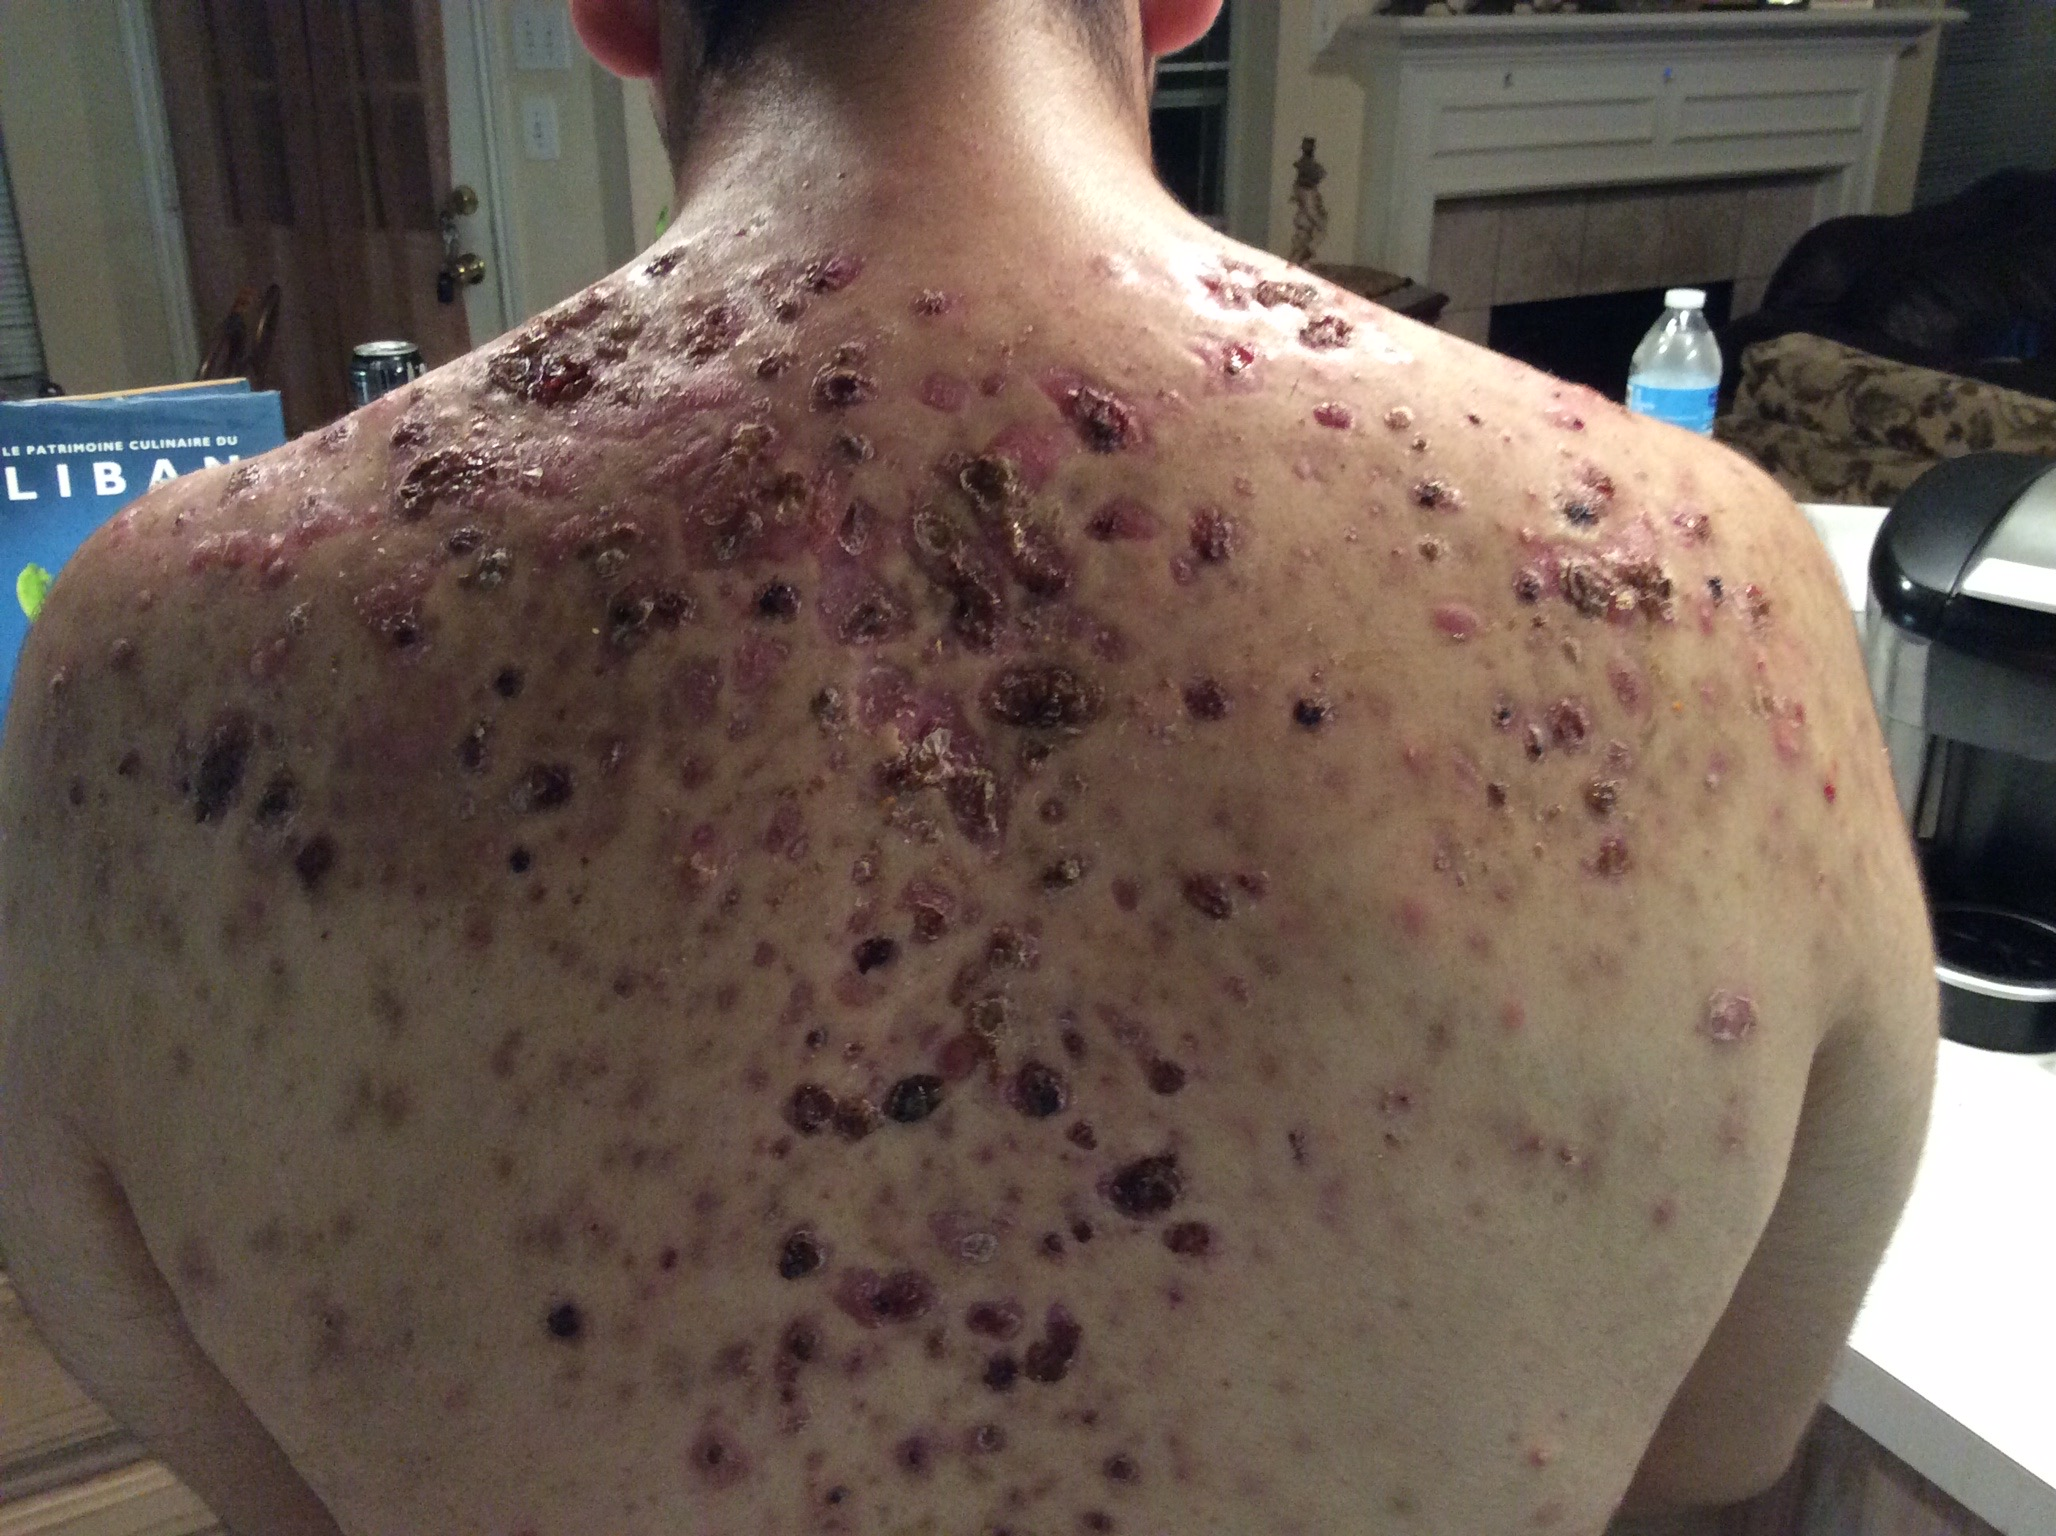 Severe Nodular Cystic Acne The Full Story Back Body Neck Acne Acne Org